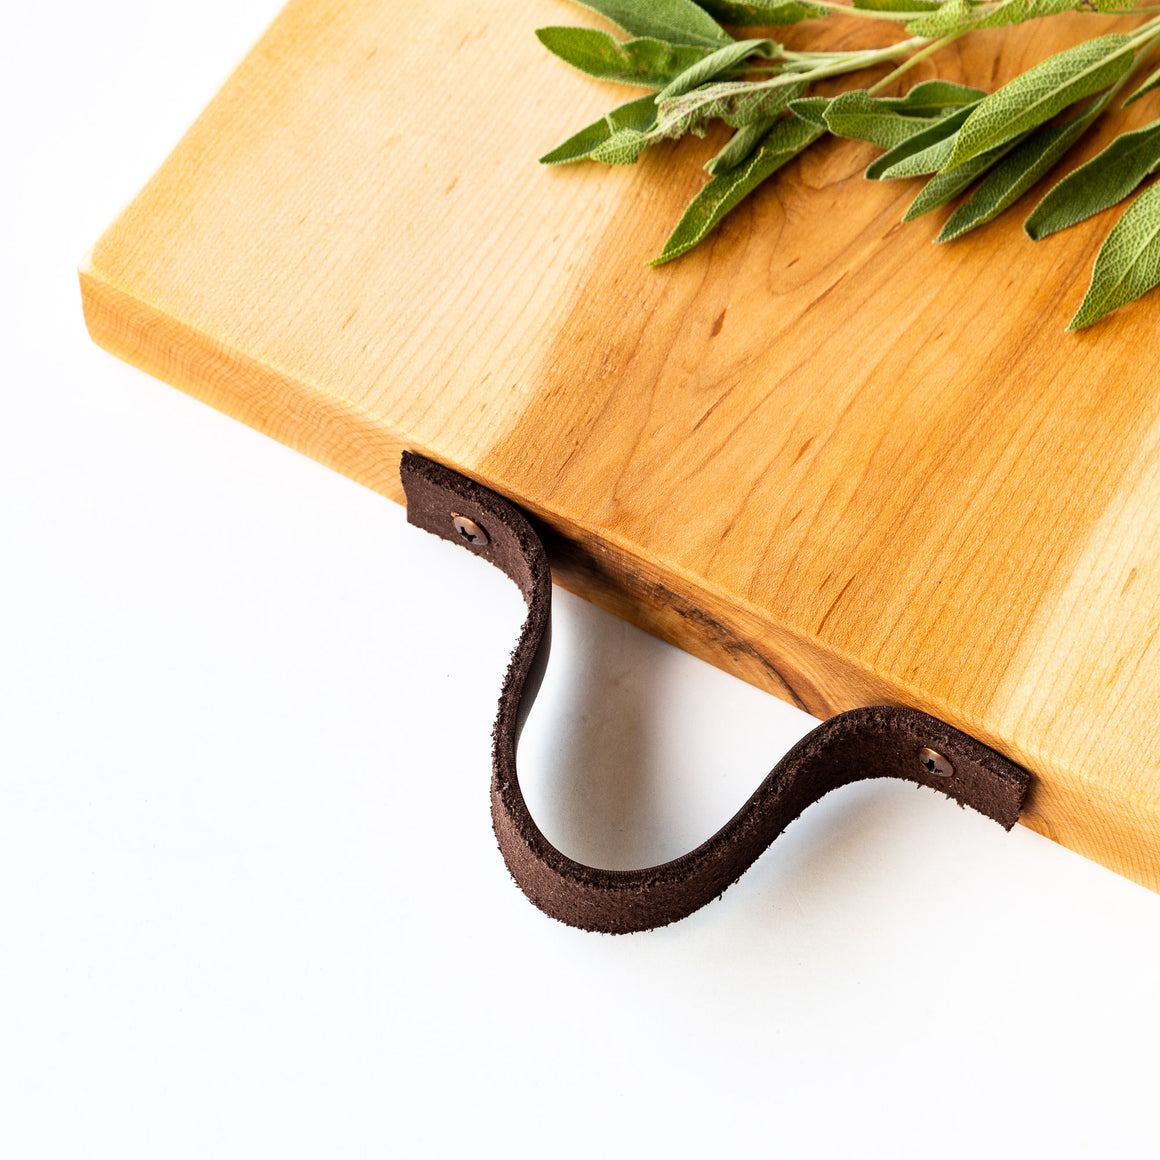 Handmade Reclaimed Wood Kitchen Cutting Board - Sold by Chic & Basta